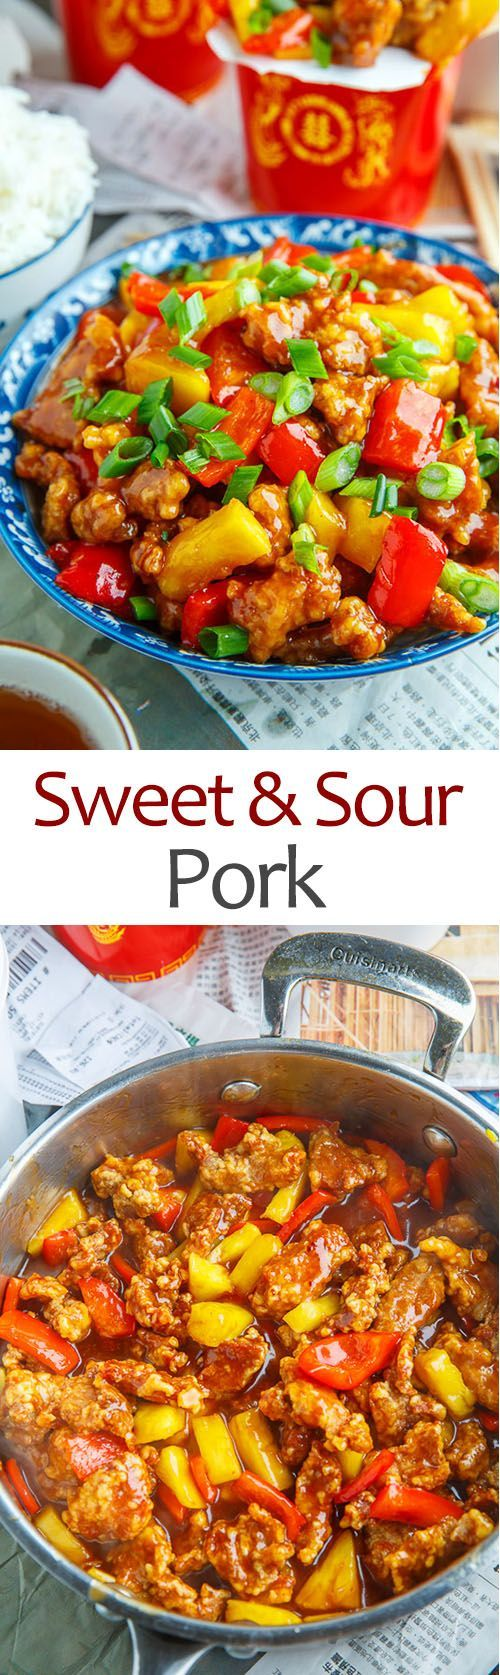 Sweet and Sour Pork. Making this tonight with some pork chops, cut into pieces! Need to make more of the sauce, but great recipe!